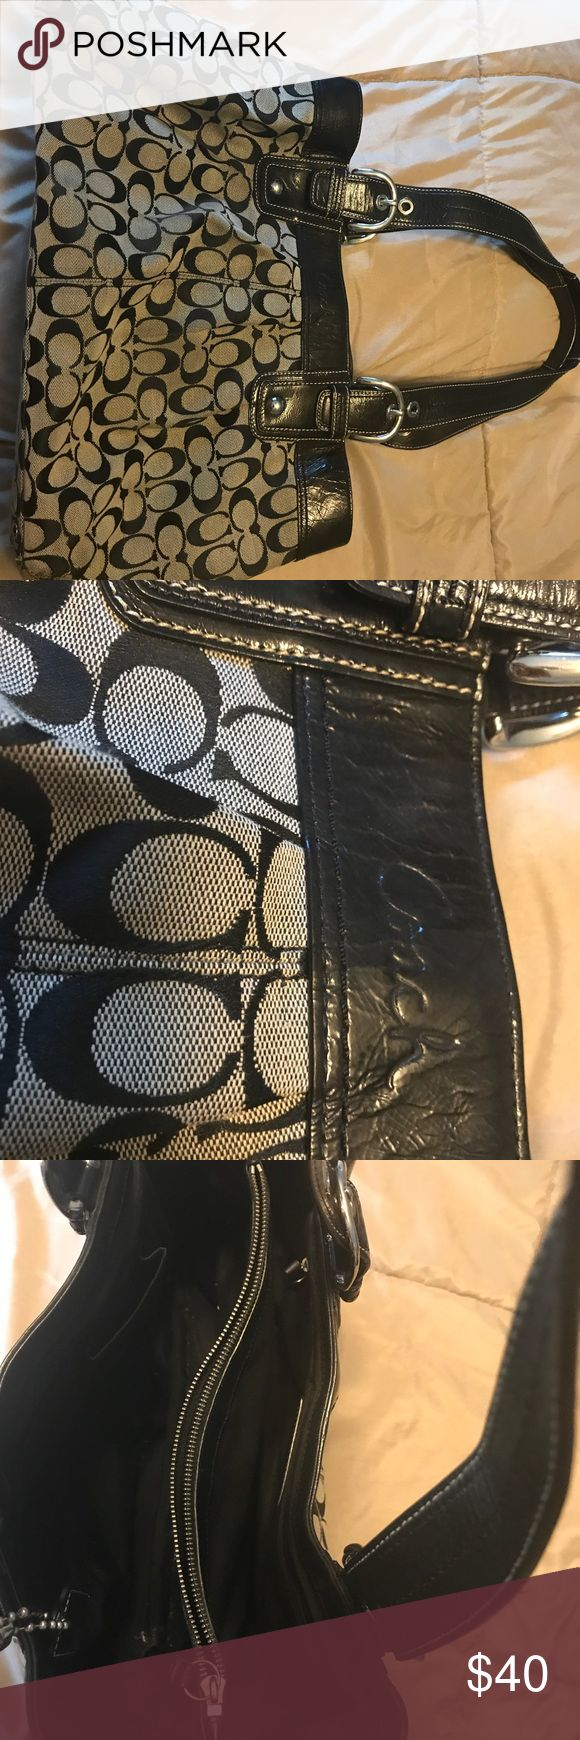 "Coach black and grey oversized handbag Coach black and grey oversized handbag - dimensions are 18"" x 10"" x 15"" - makes a great work bag or smaller diaper bag! Coach Bags Totes"